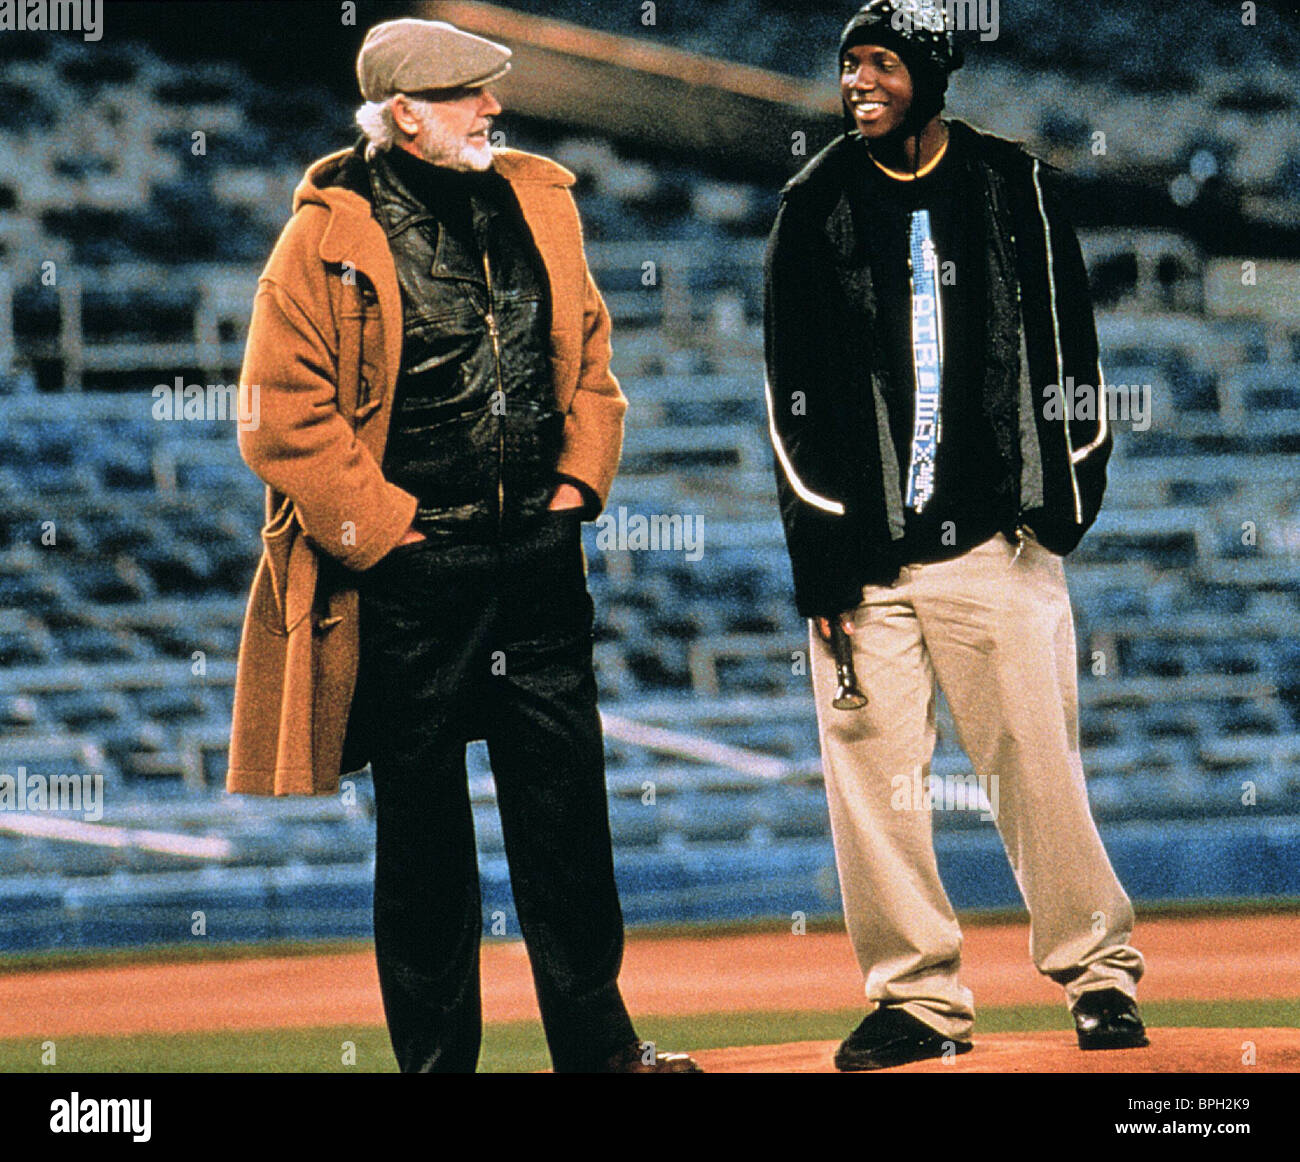 Sean Connery Rob Brown Finding Forrester 2000 Stock Photo Alamy